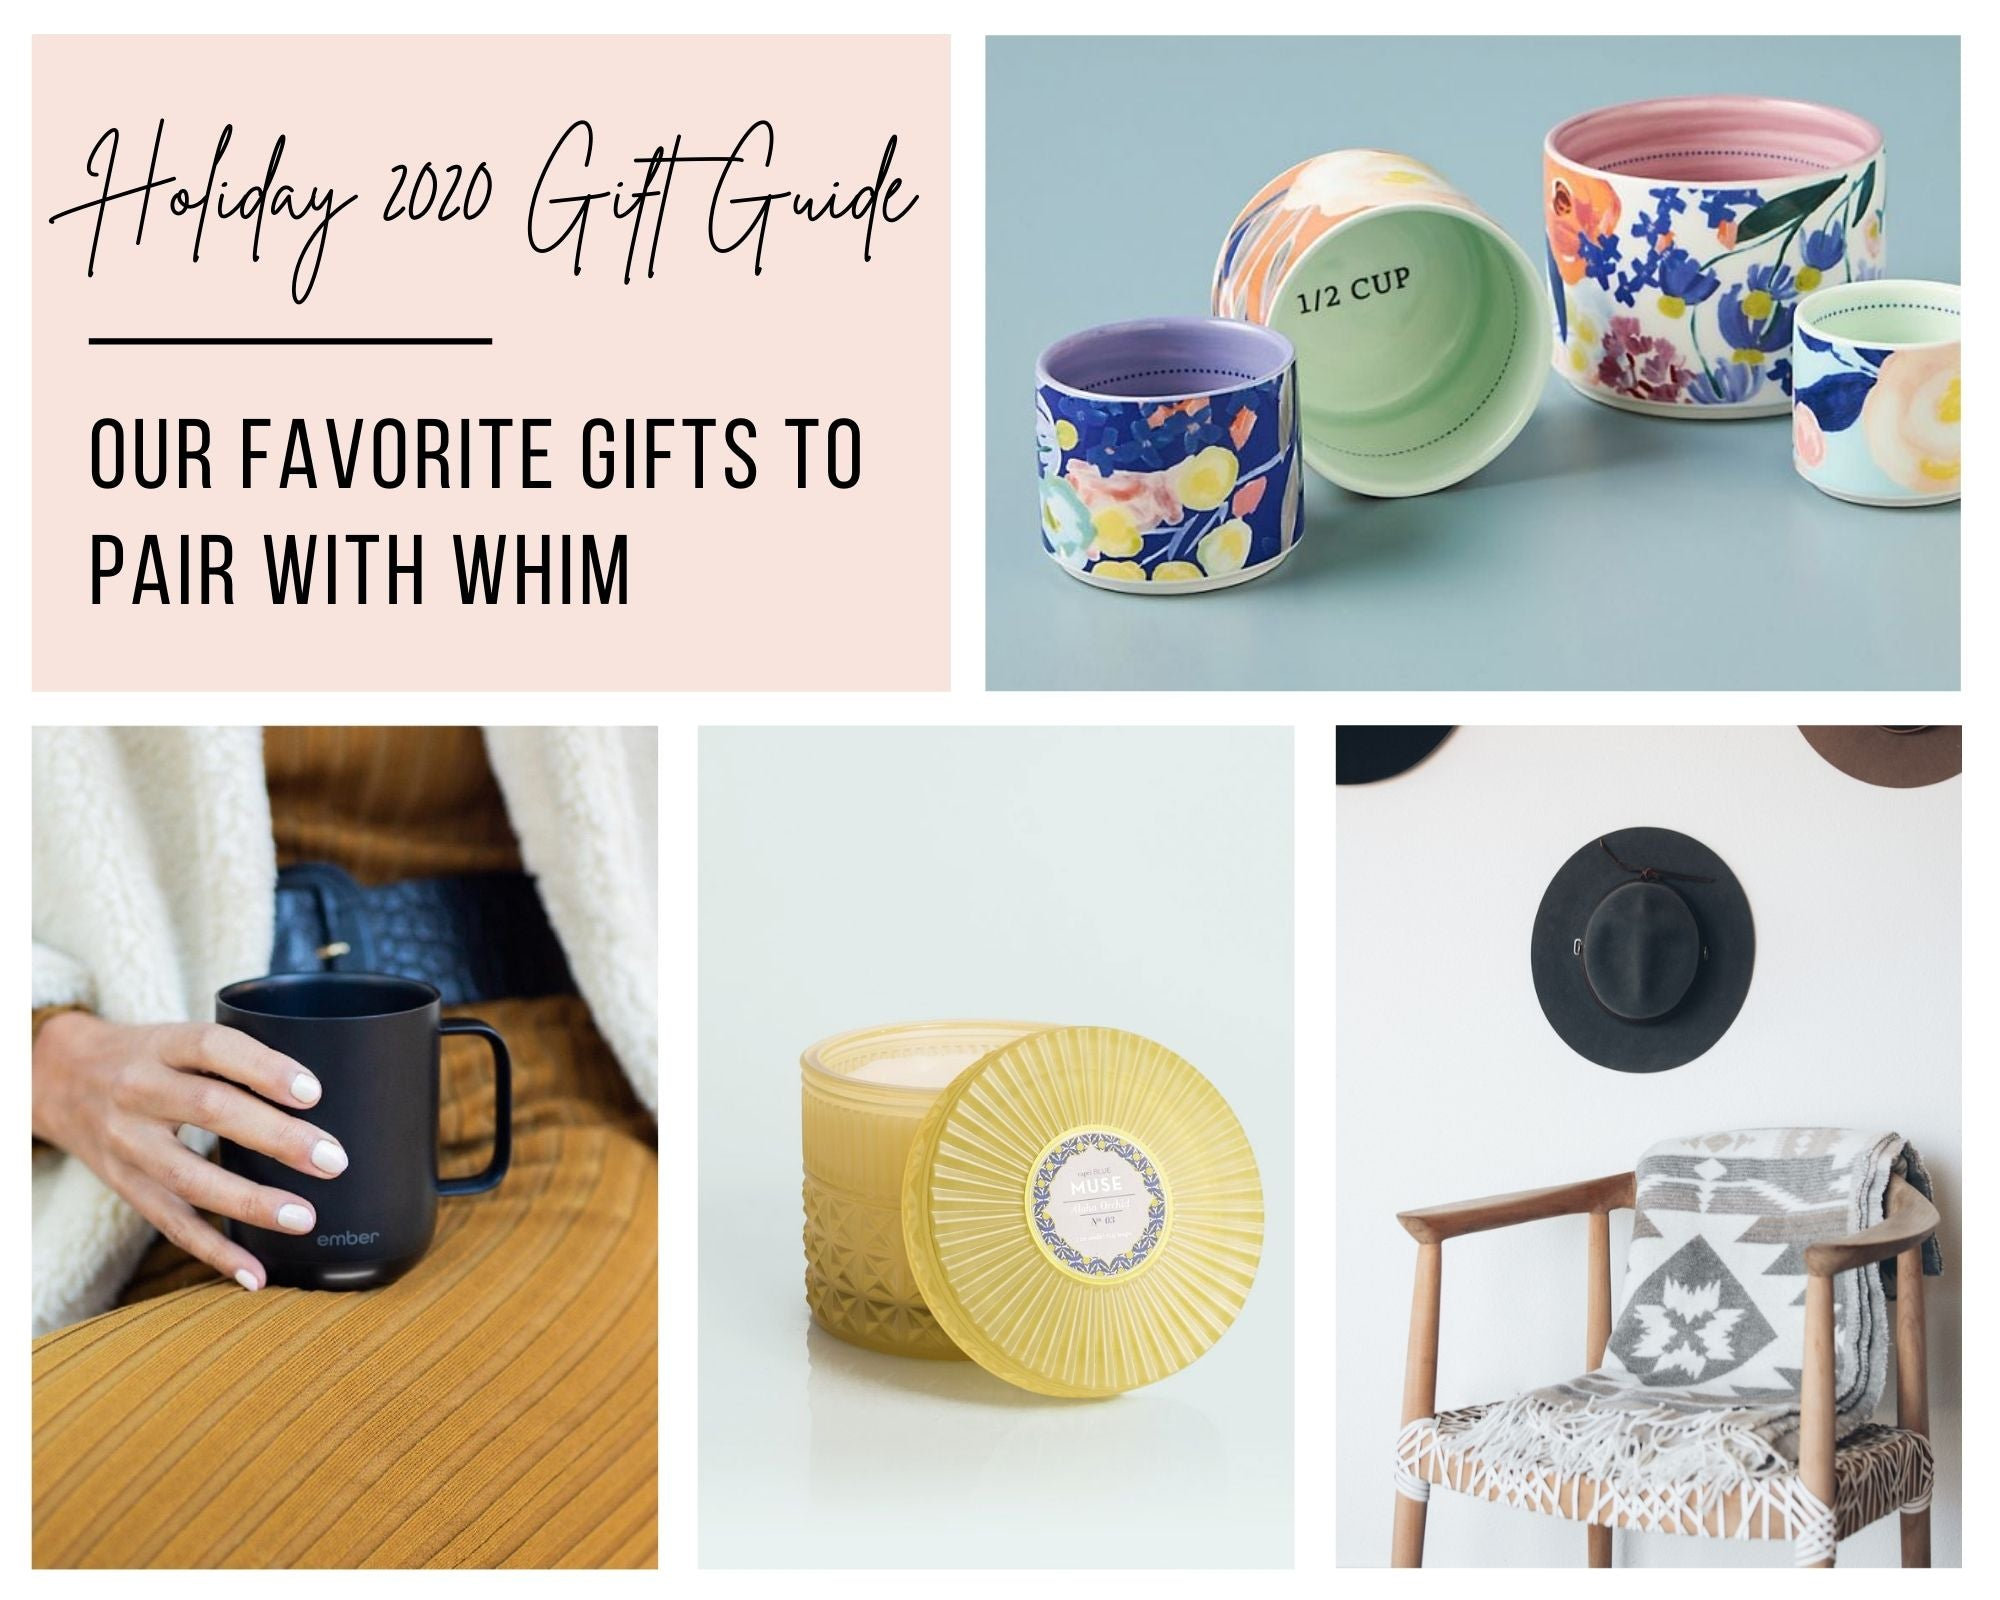 Holiday 2020 Gifts for Mom, Sister, Best Friend, Yourself